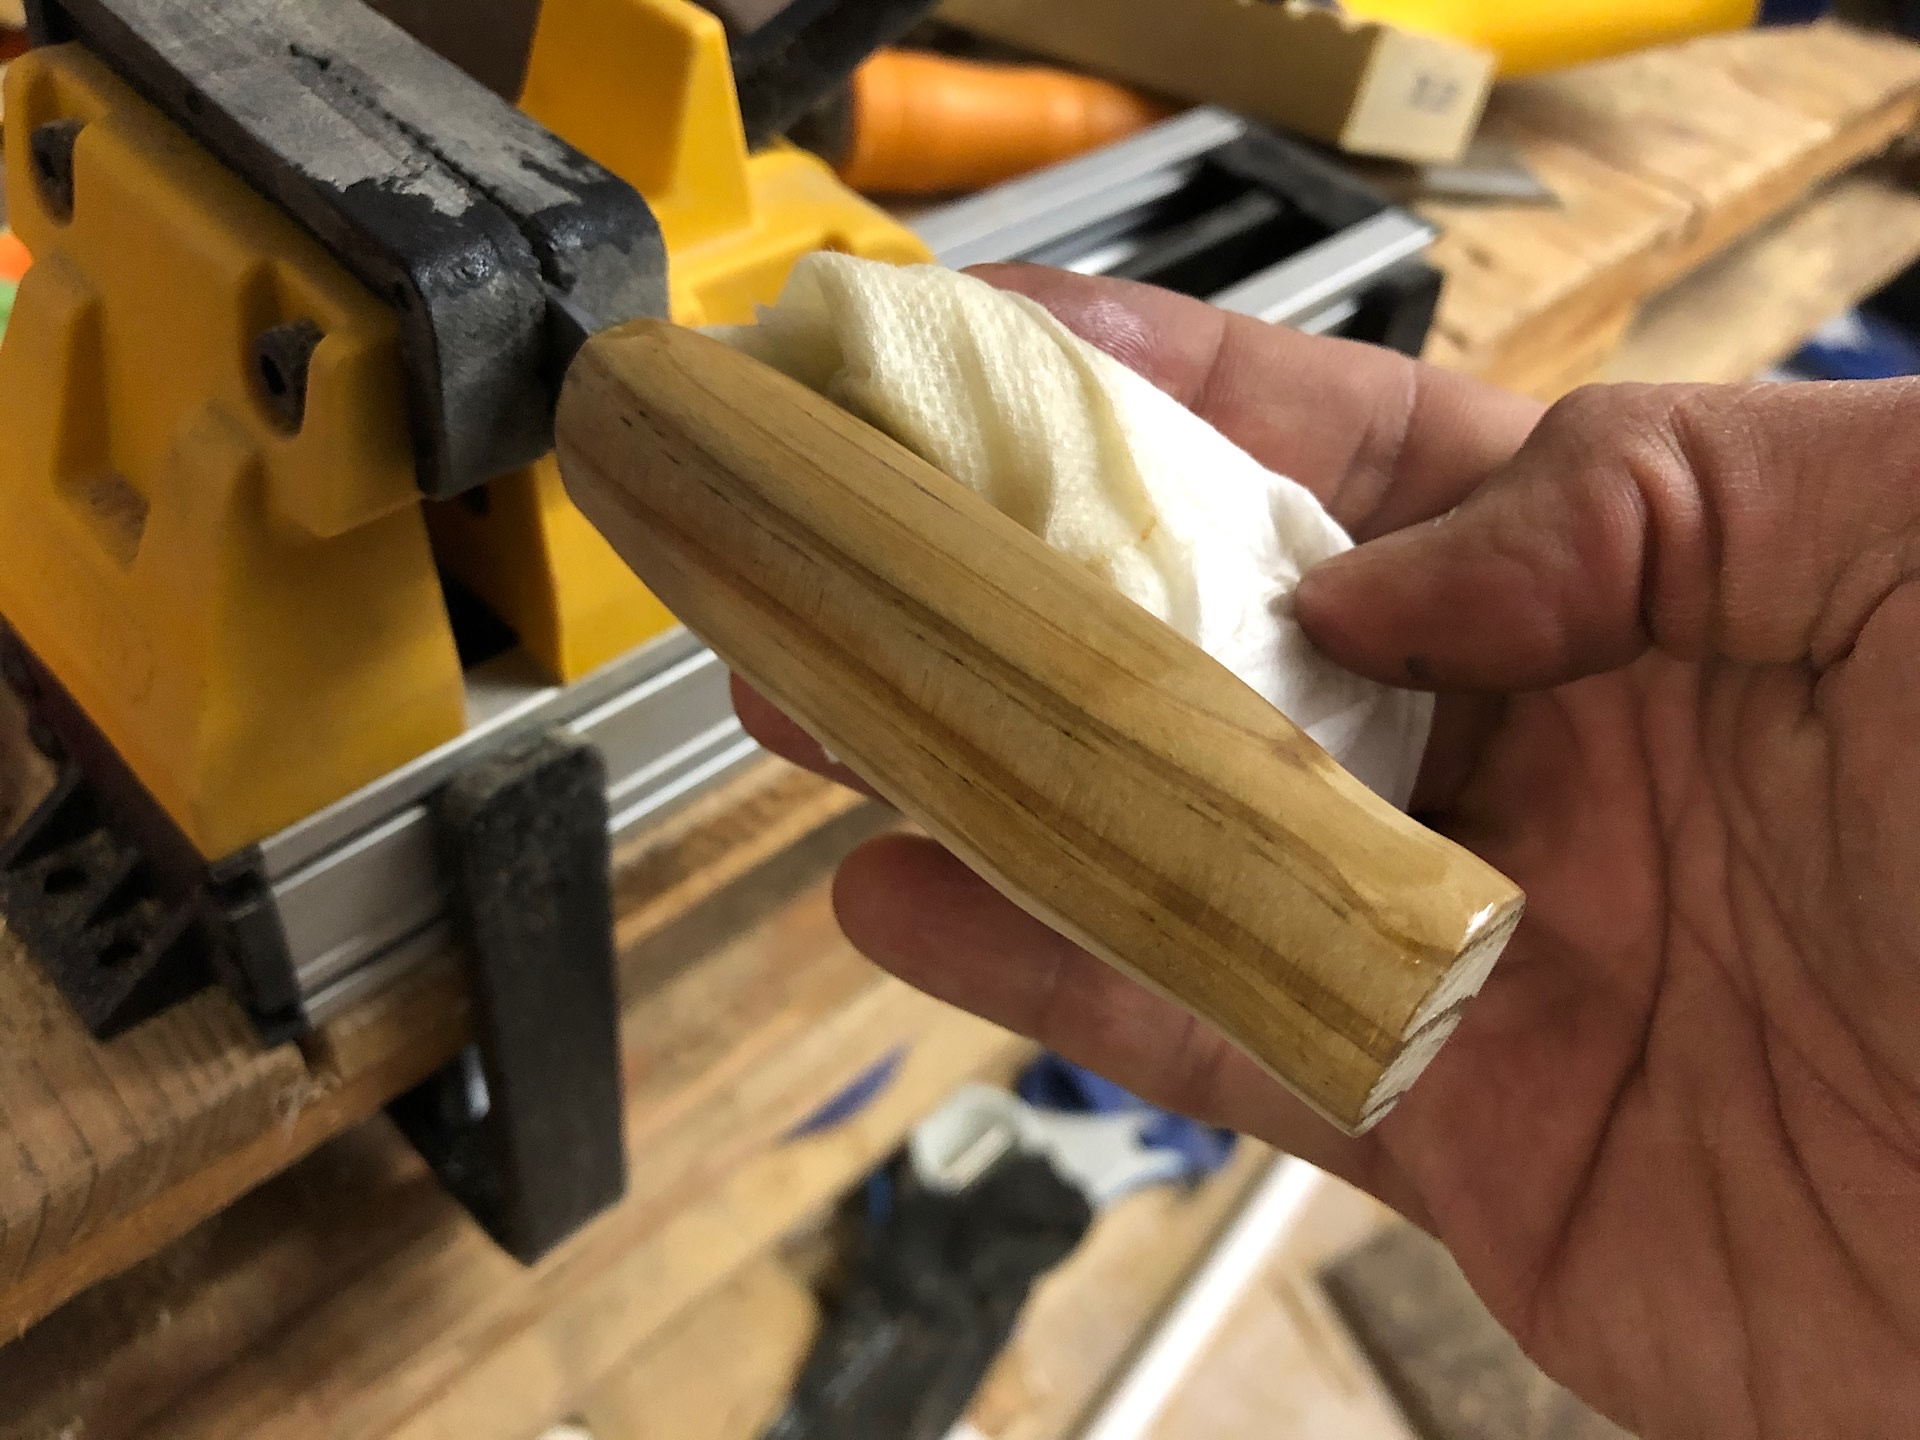 Oiling a wooden knife handle